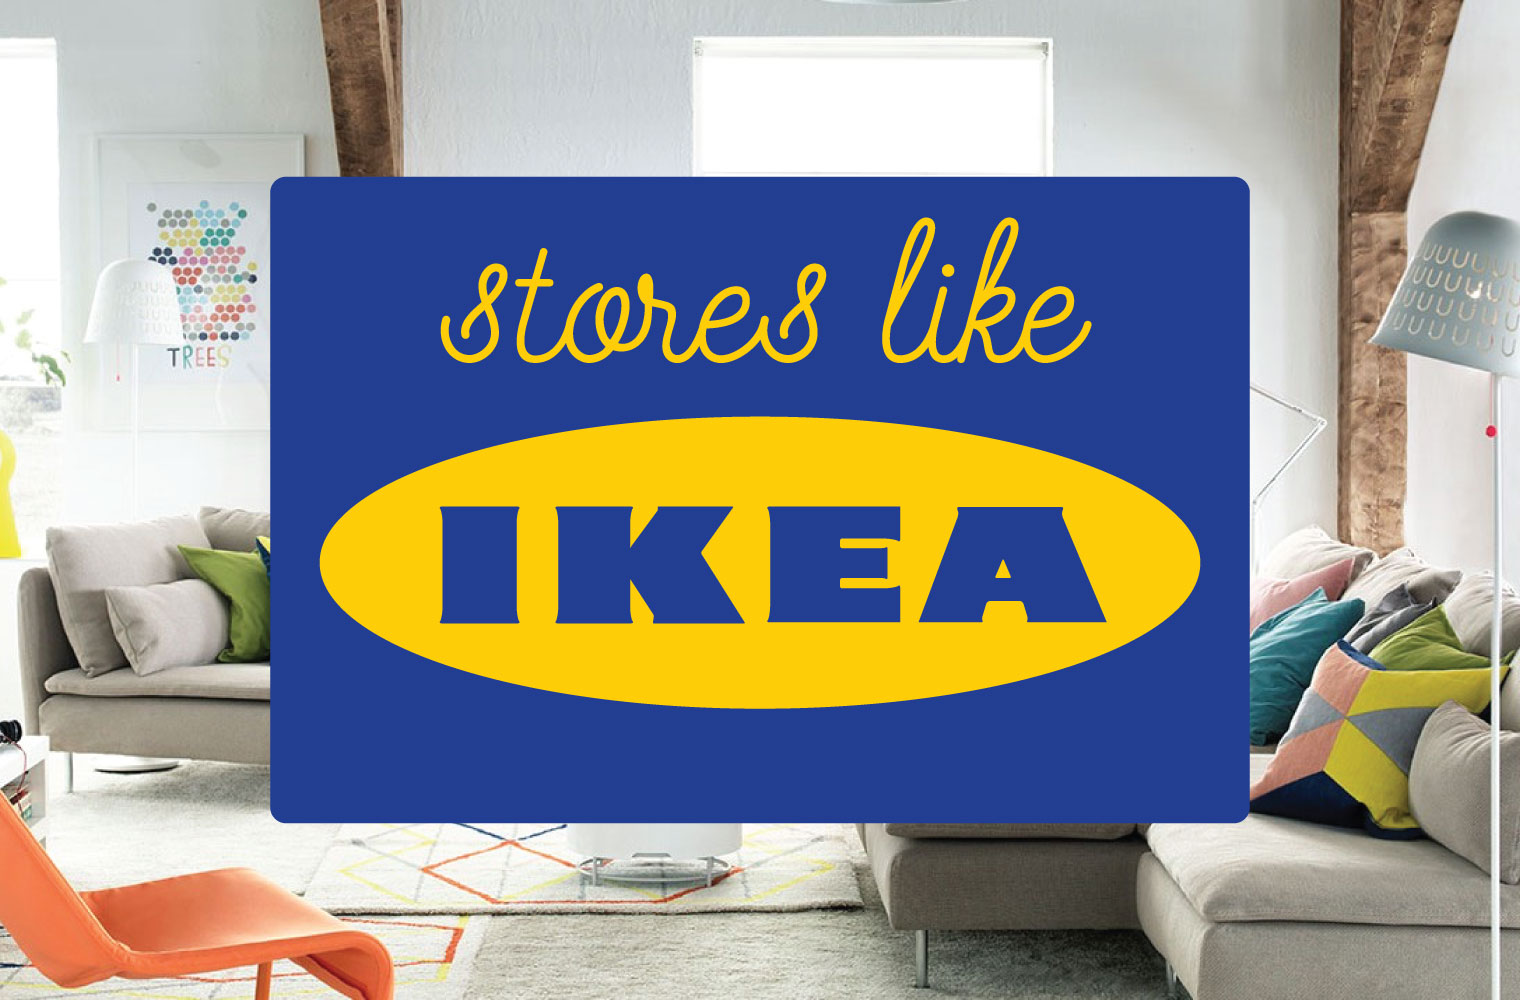 Stores like ikea 10 alternatives for modern furniture for What time does ikea close